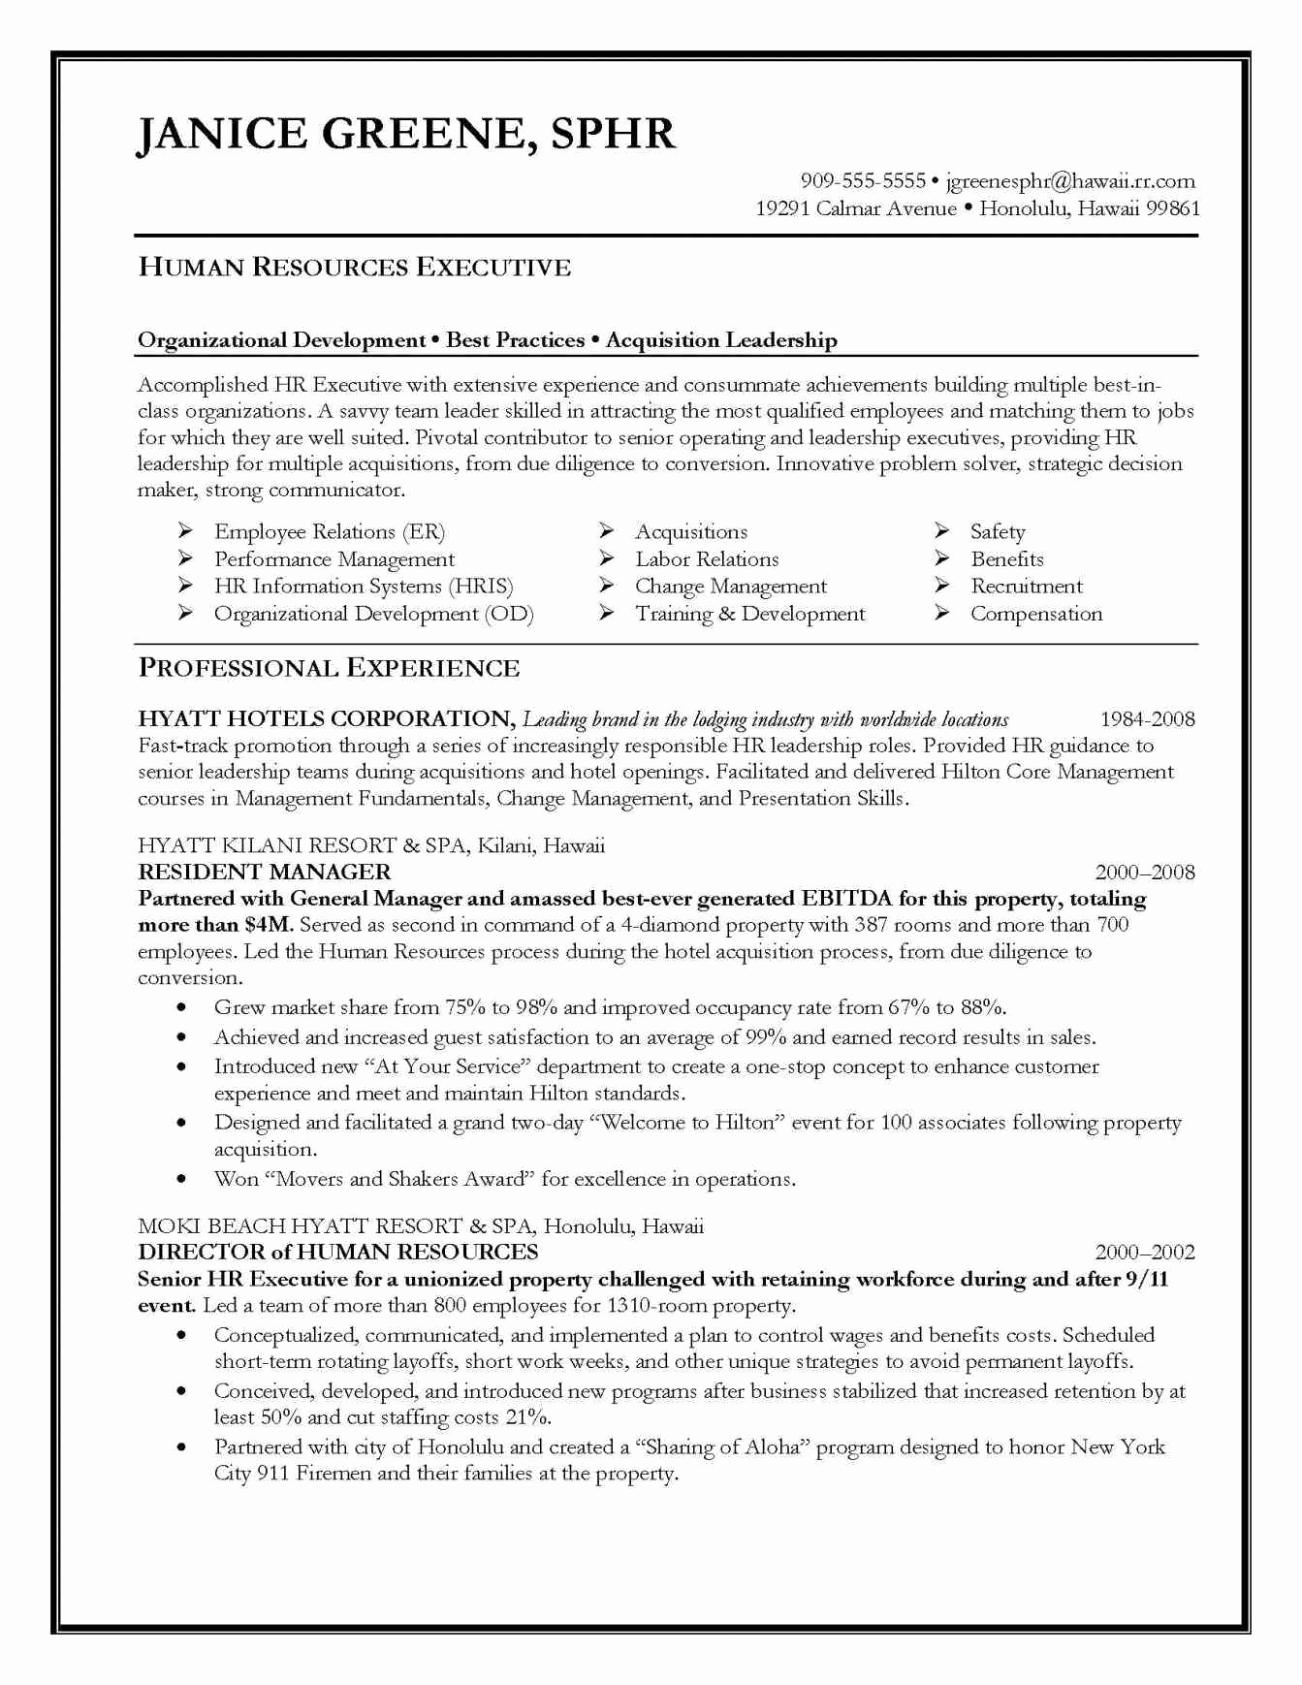 Career Transition Resume Sample - Career Change Resume Sample Awesome Resume Objective Statement Entry